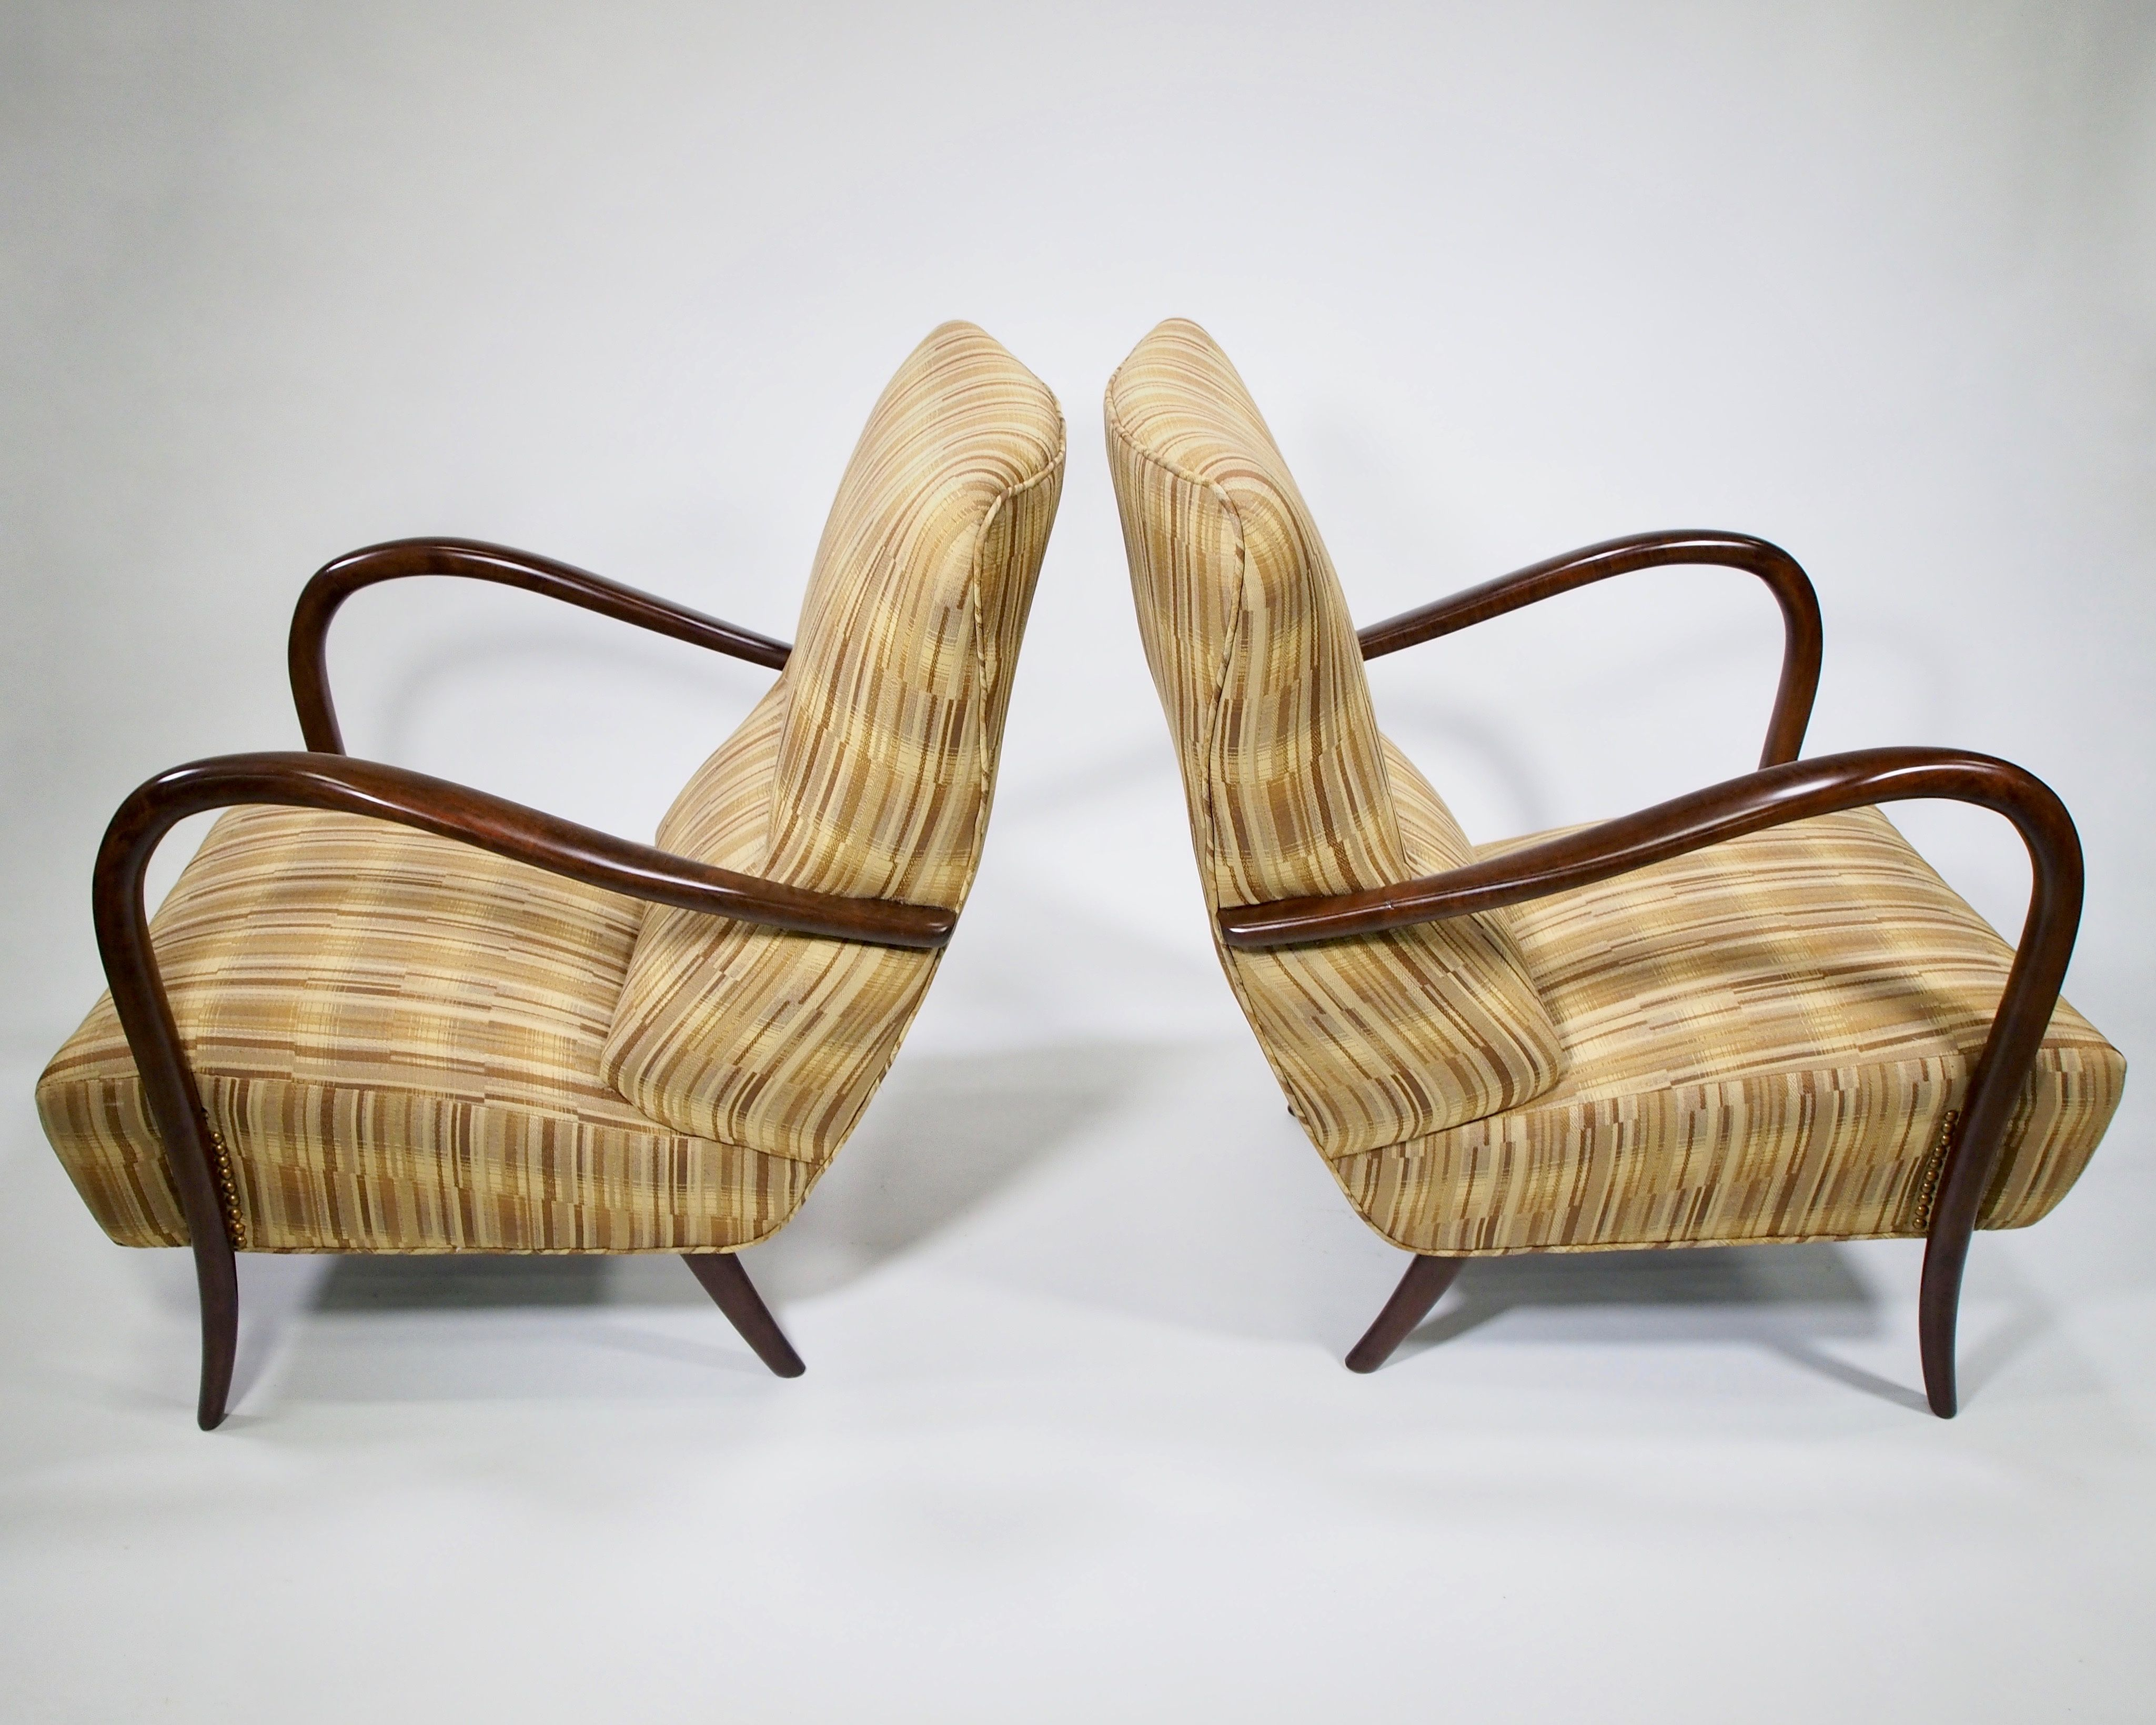 Pair Italian Mid Century High Back Chairs With Bentwood Frames  # Muebles Gustavo Martin